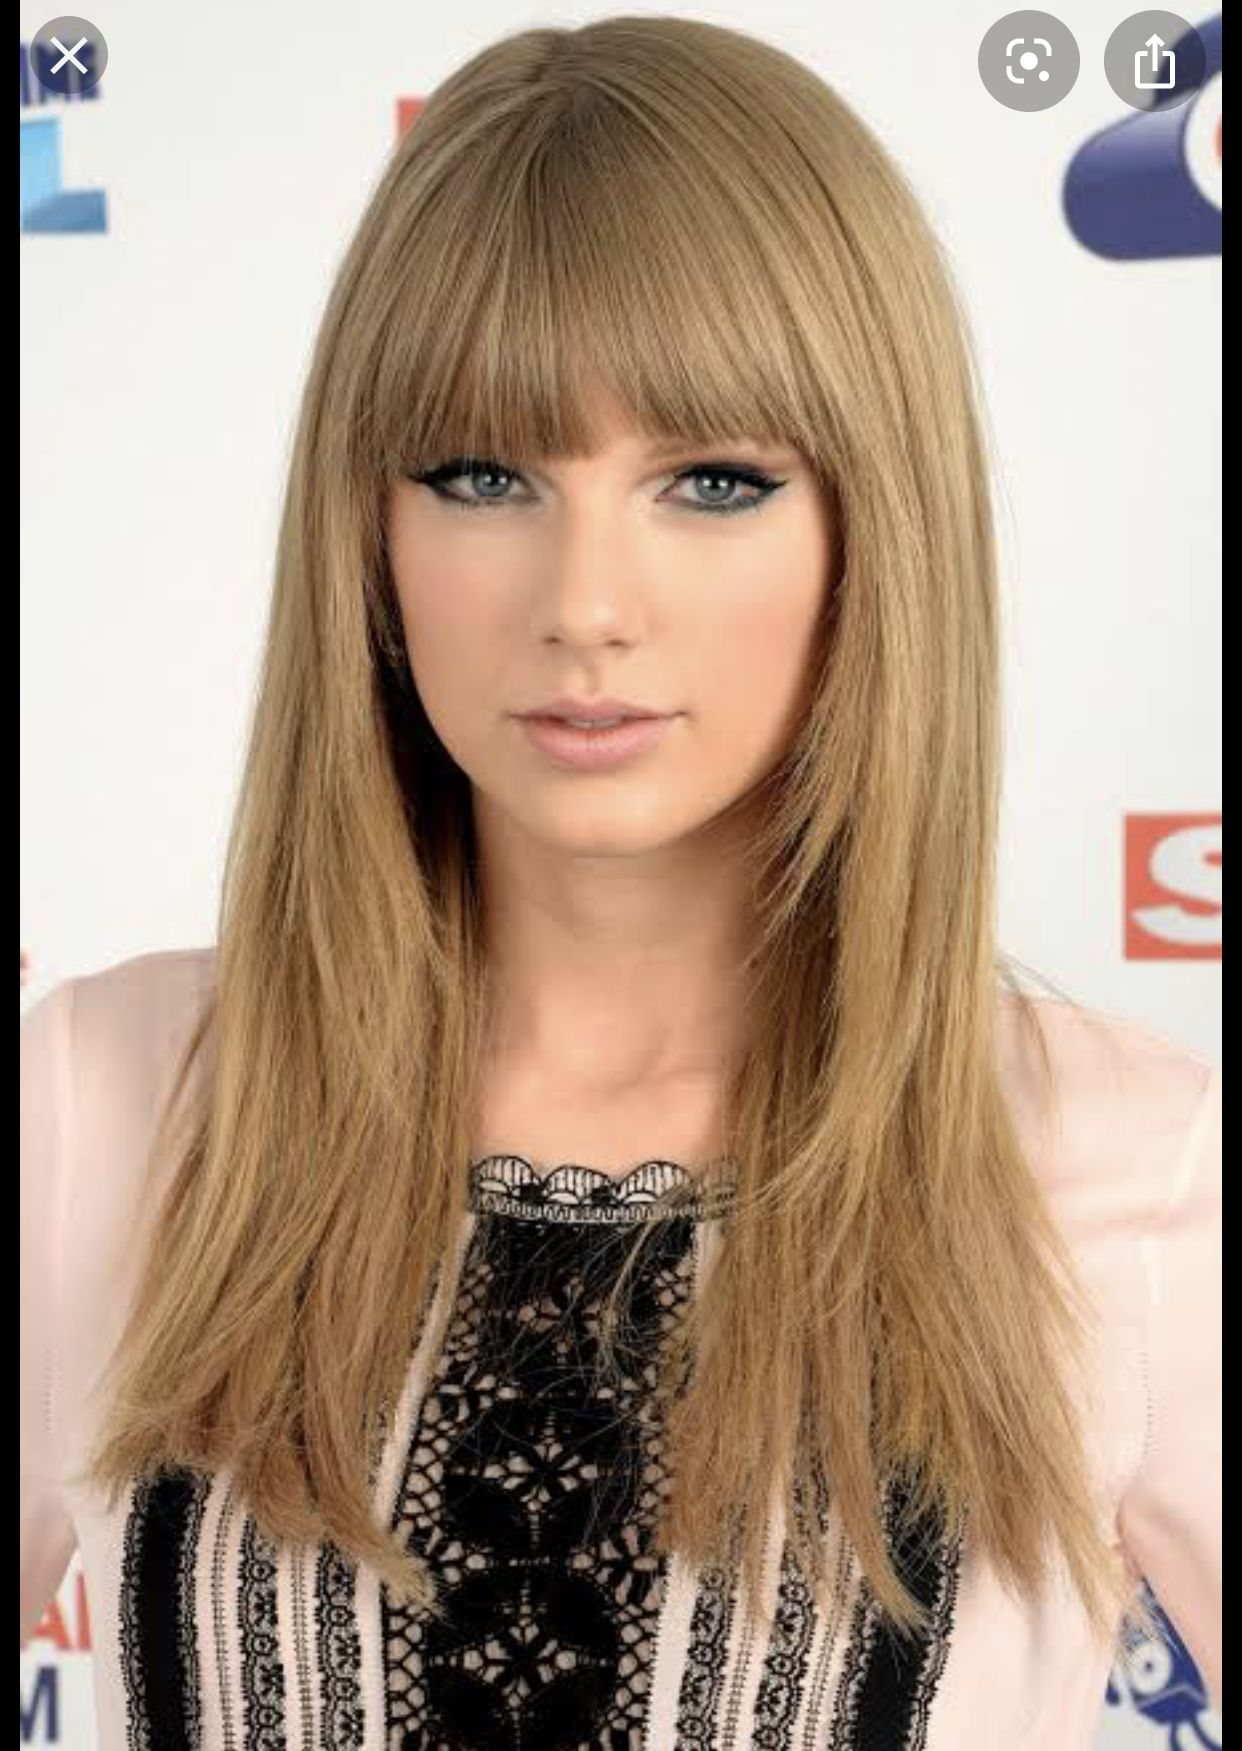 Pin By Danny Valerio On Hair In 2020 Taylor Swift Haircut Taylor Swift Hair Long Hair Styles